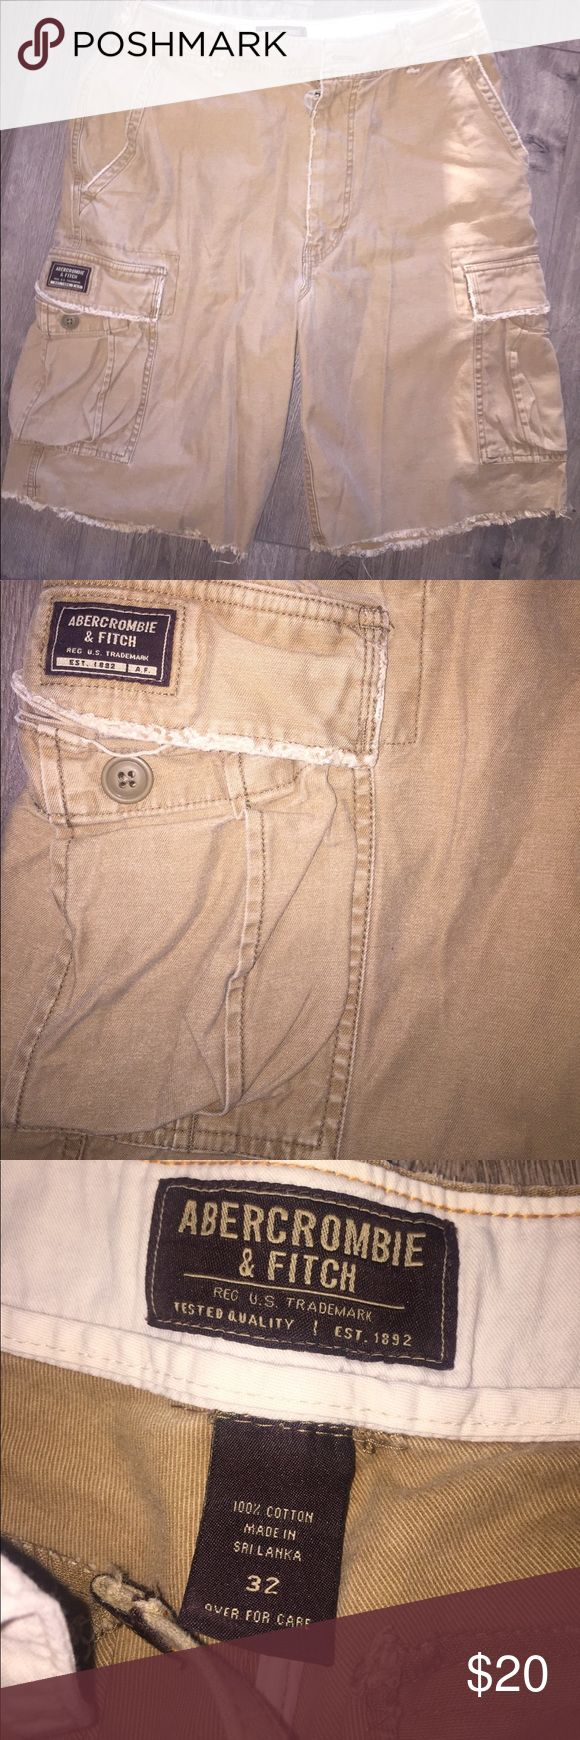 Abercrombie and Fitch men's Cargo shorts brand new Classic anf summer look classic and trendy Abercrombie & Fitch Shorts Cargo